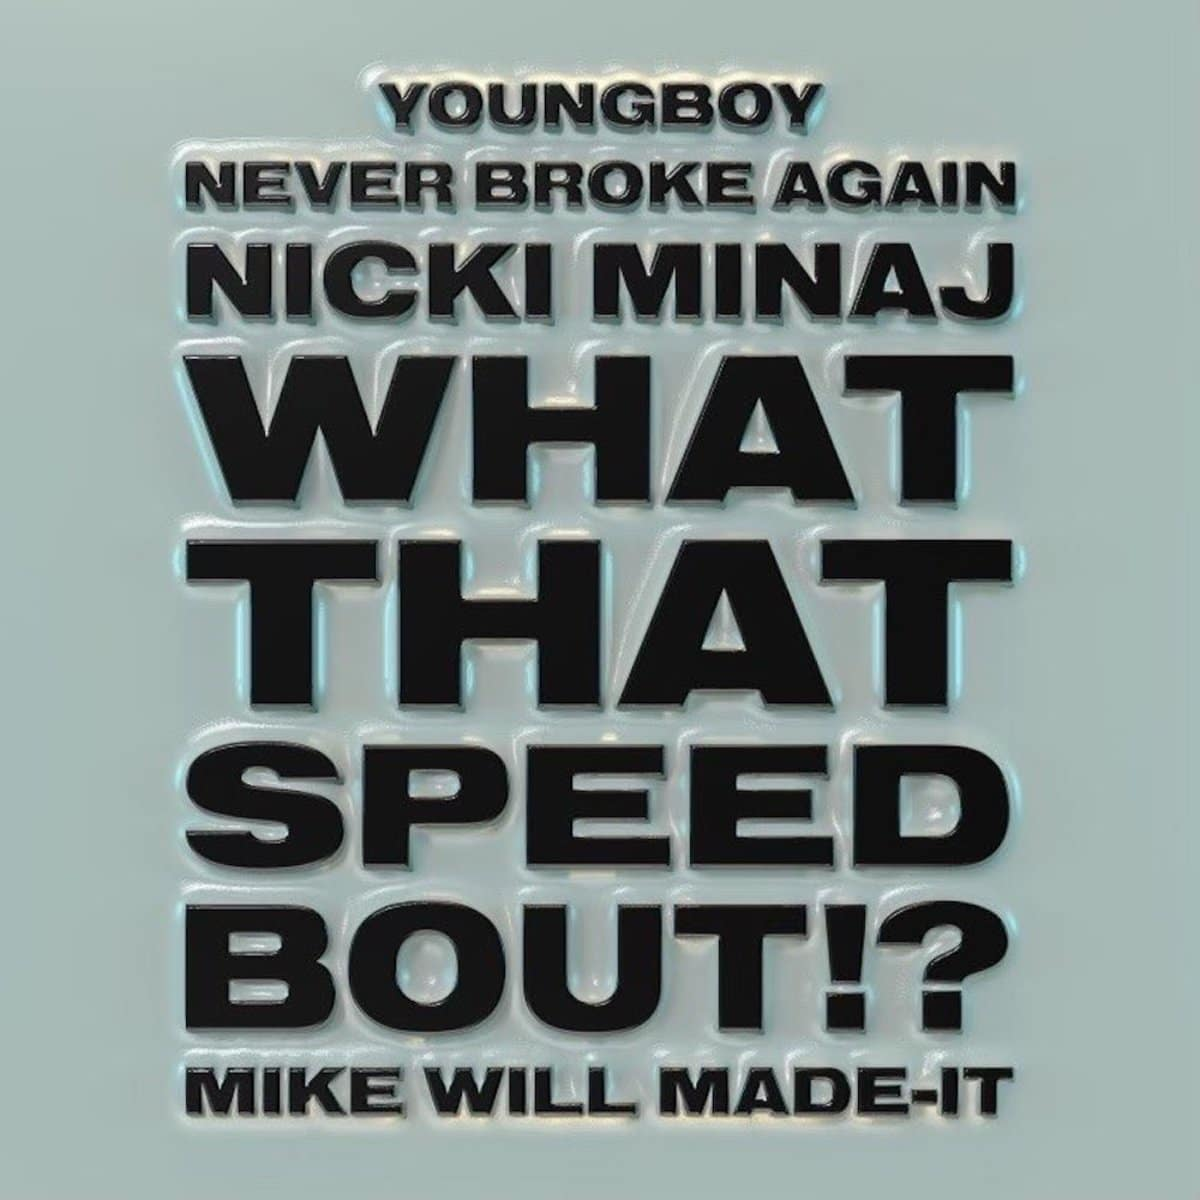 MP3: Mike WiLL Made-It Ft. Nicki Minaj & YoungBoy – What That Speed Bout?!